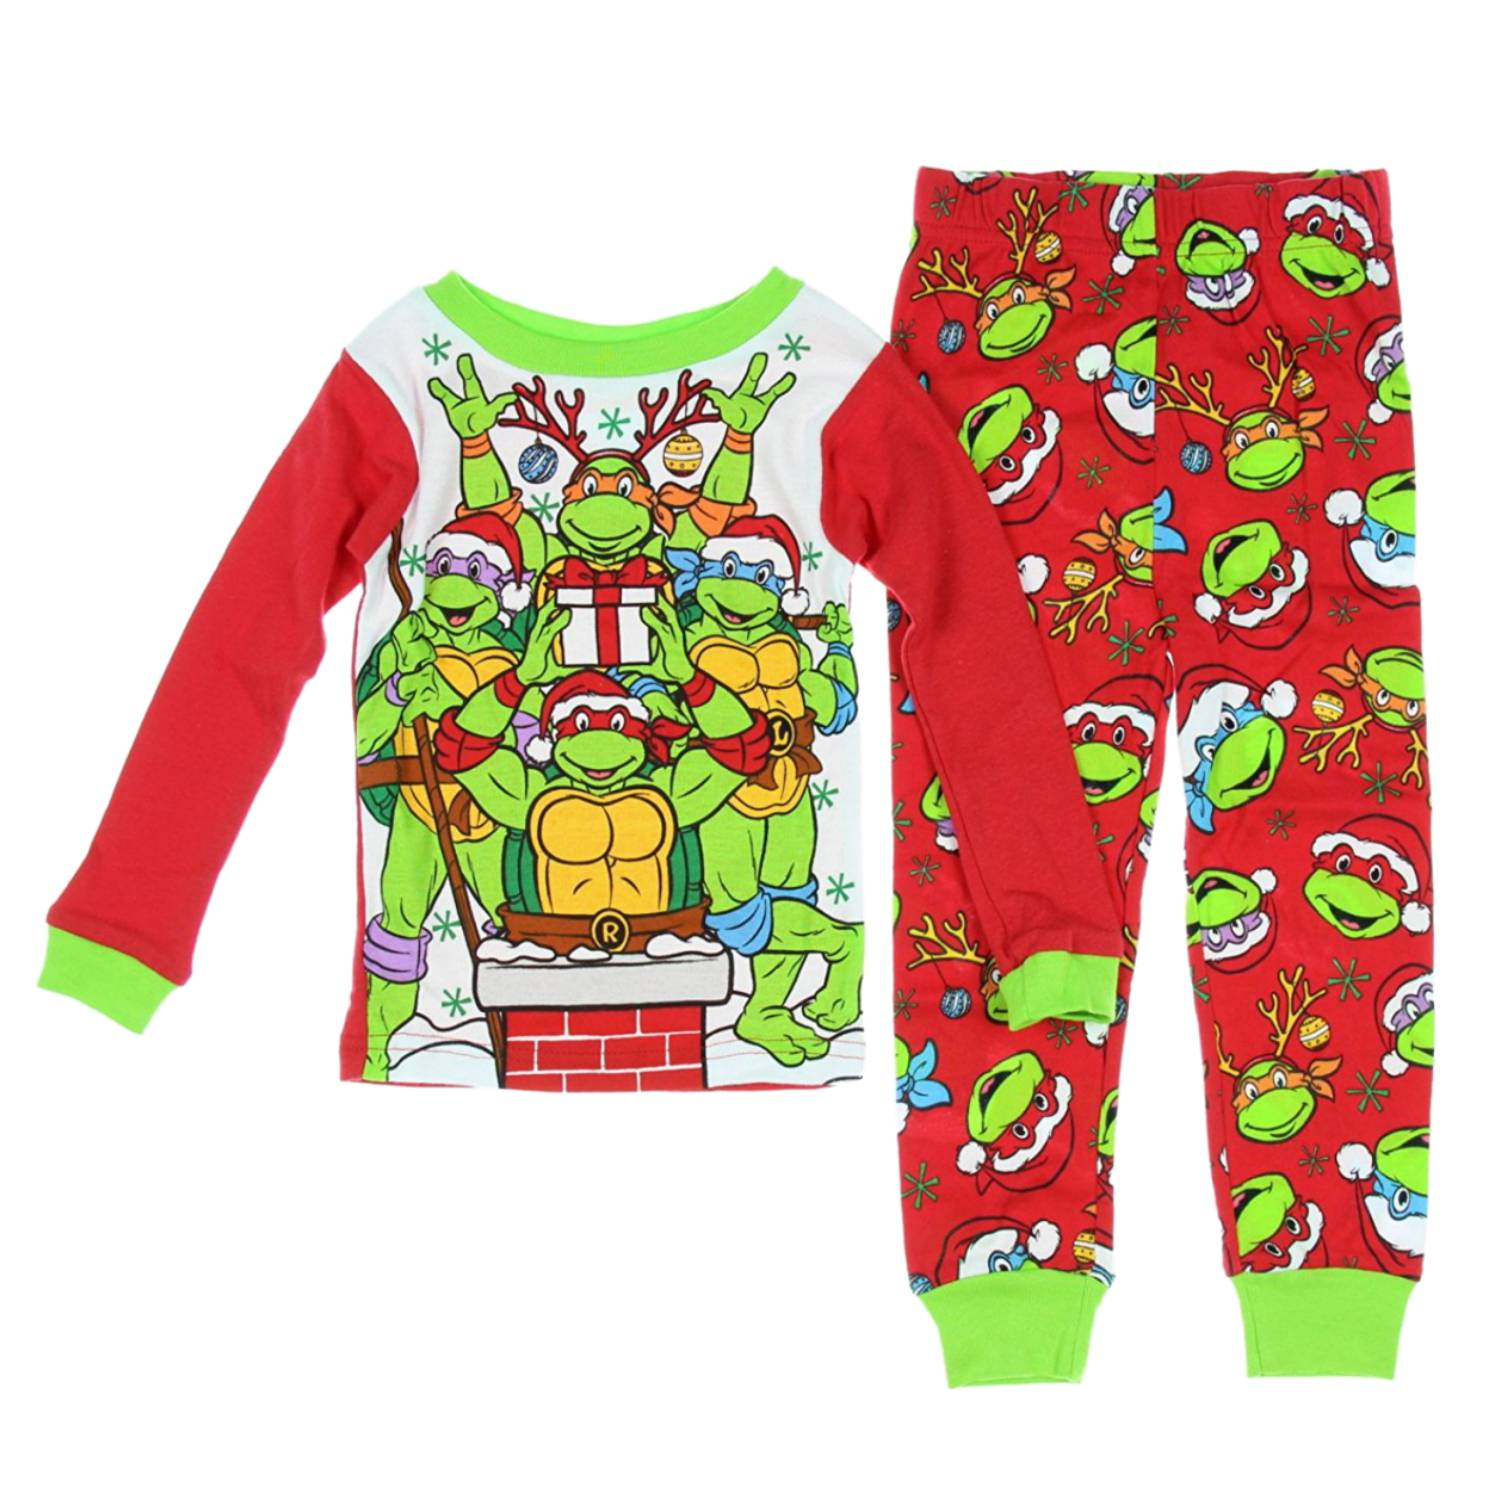 Teenage Mutant Ninja Turtles Baby Toddler Boy Long Sleeve Tight Fit Cotton Pajamas